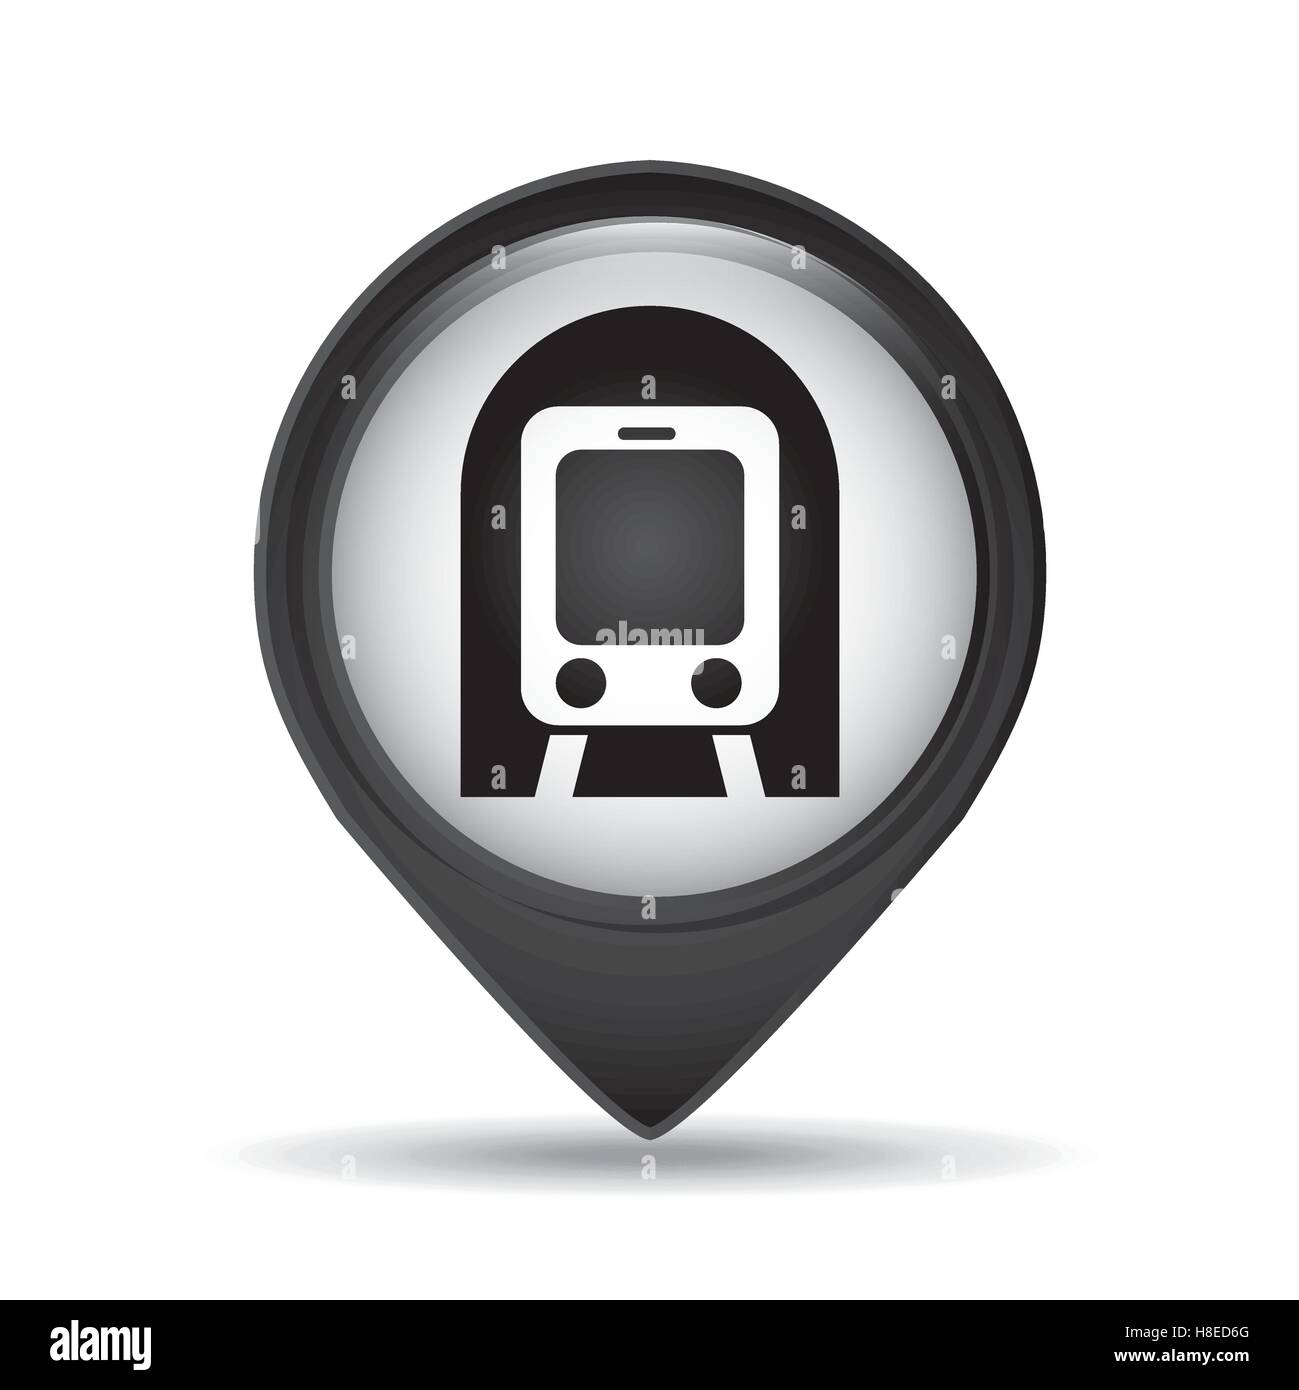 Aiport Icon Subway Map.Symbol Metro Train Pin Map Icon Vector Illustration Eps 10 Stock